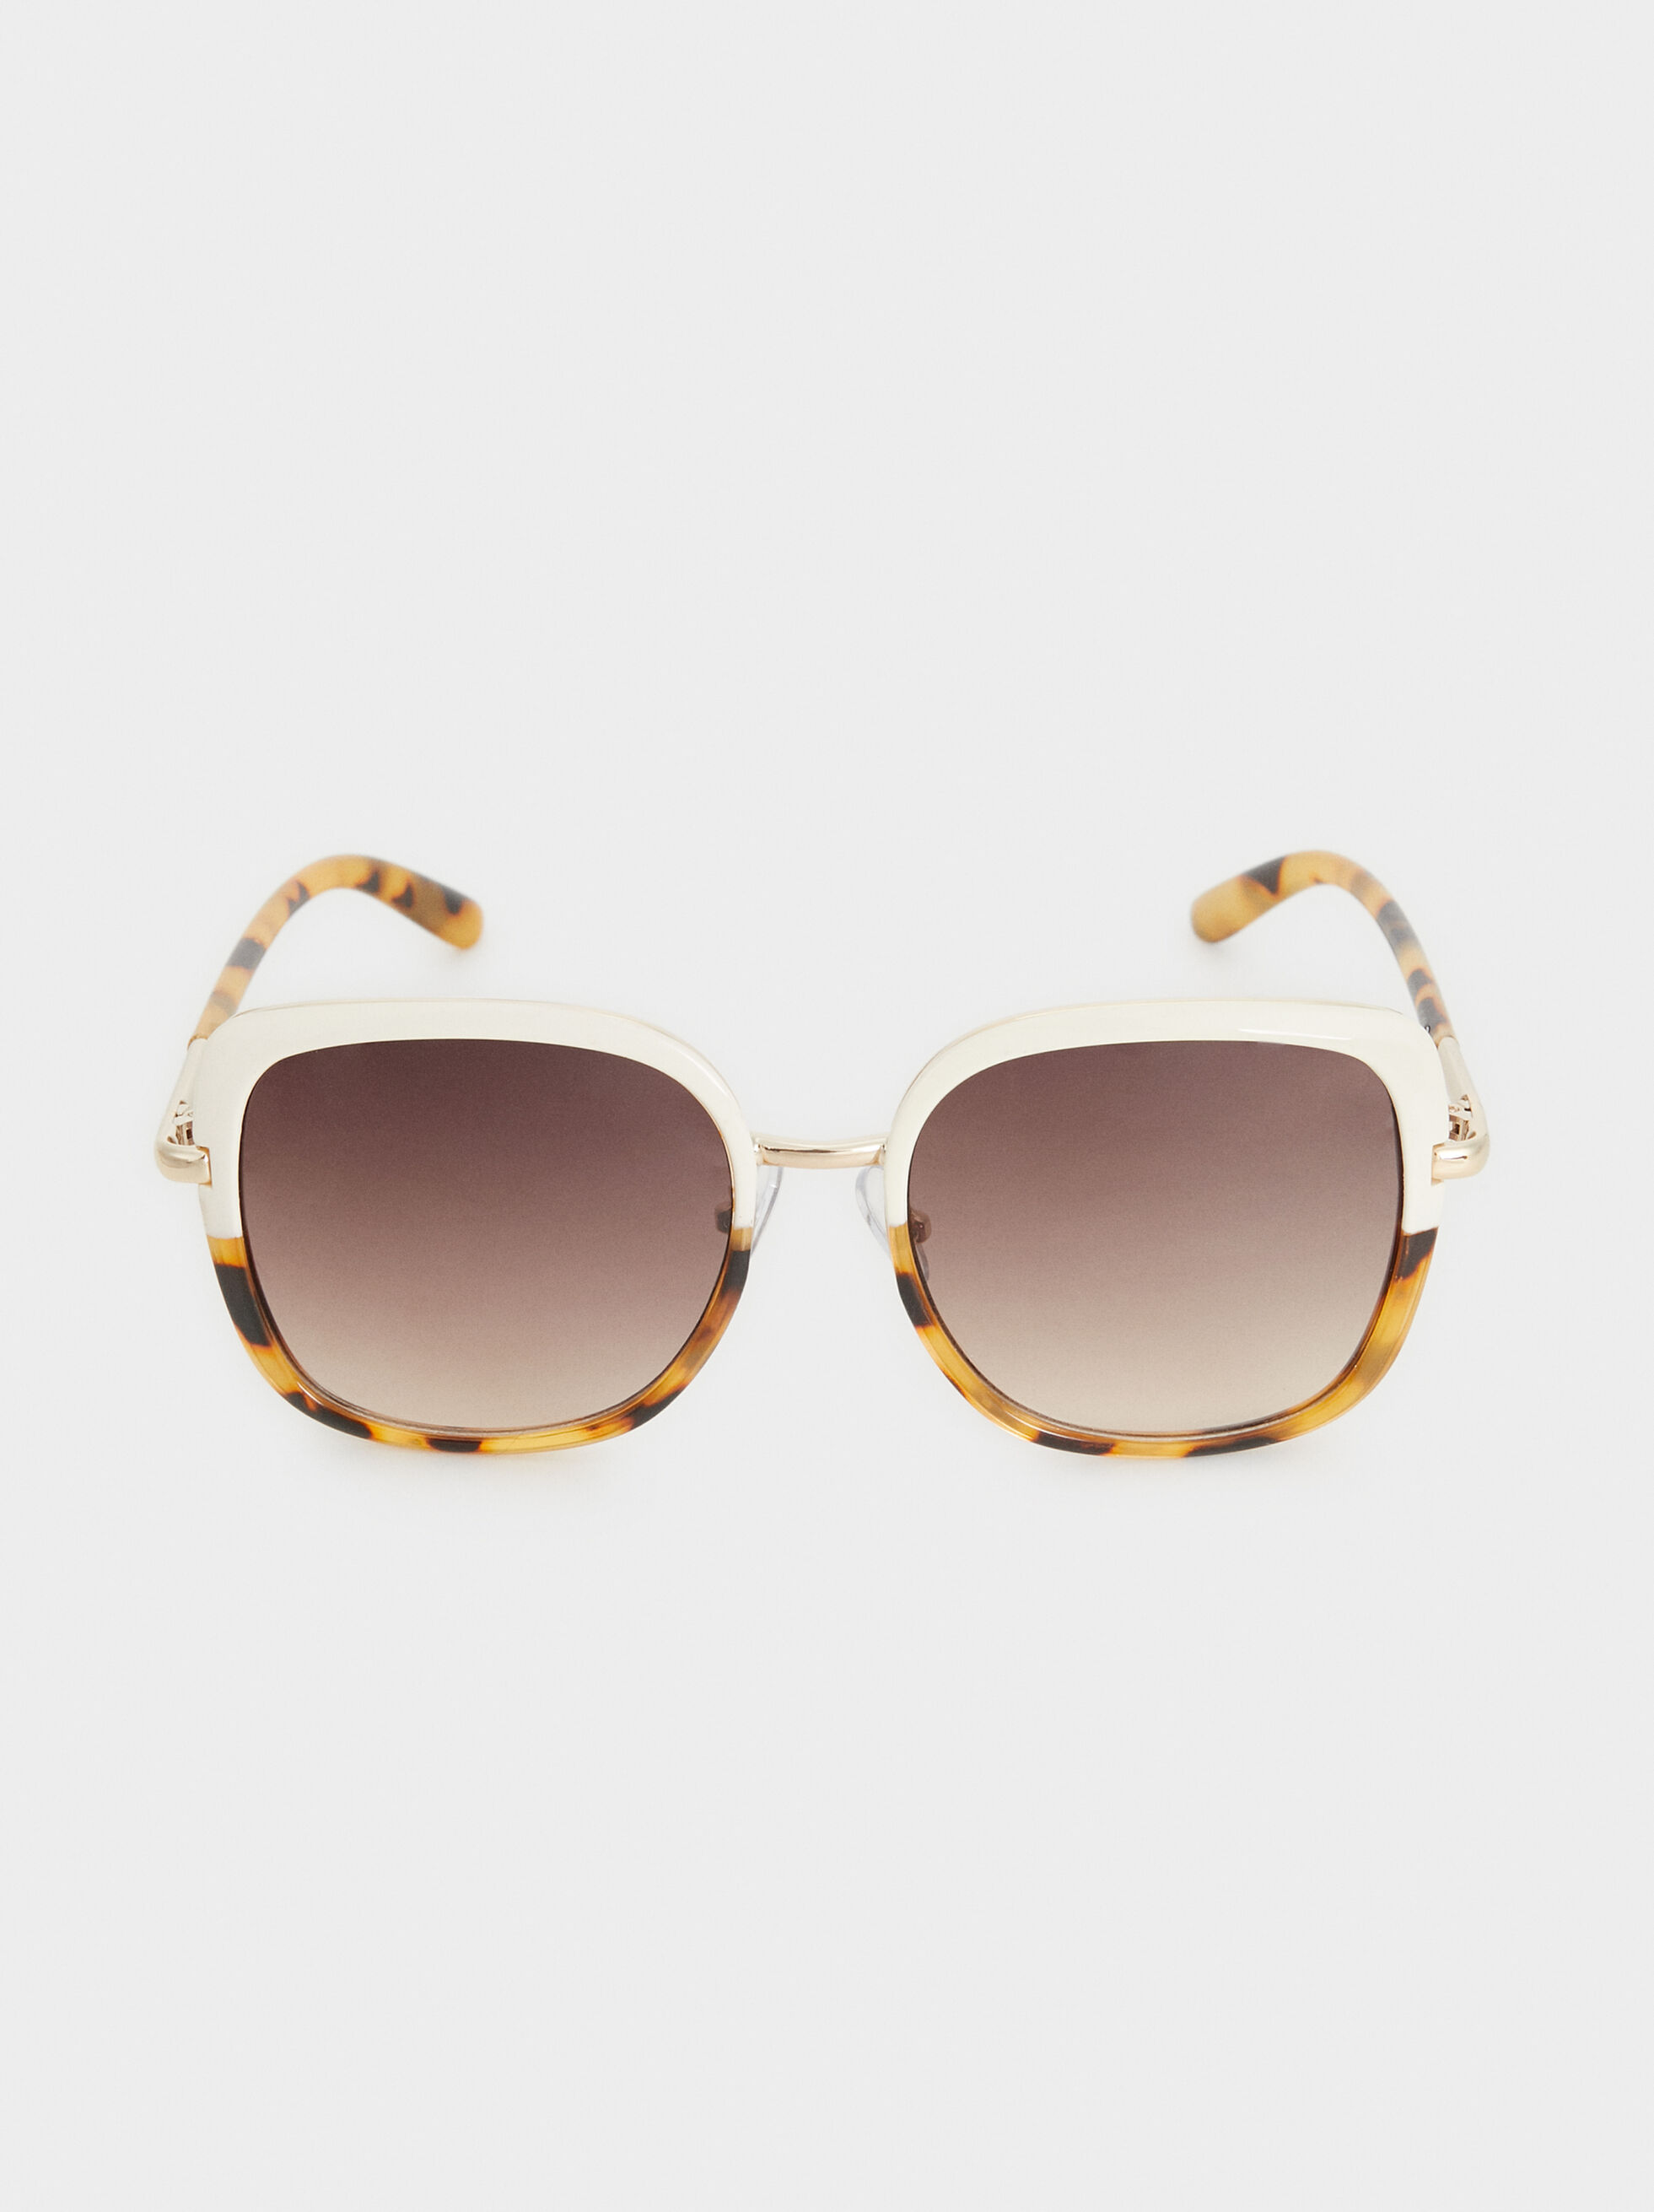 Tortoise Shell Sunglasses With Metal Detail, White, hi-res